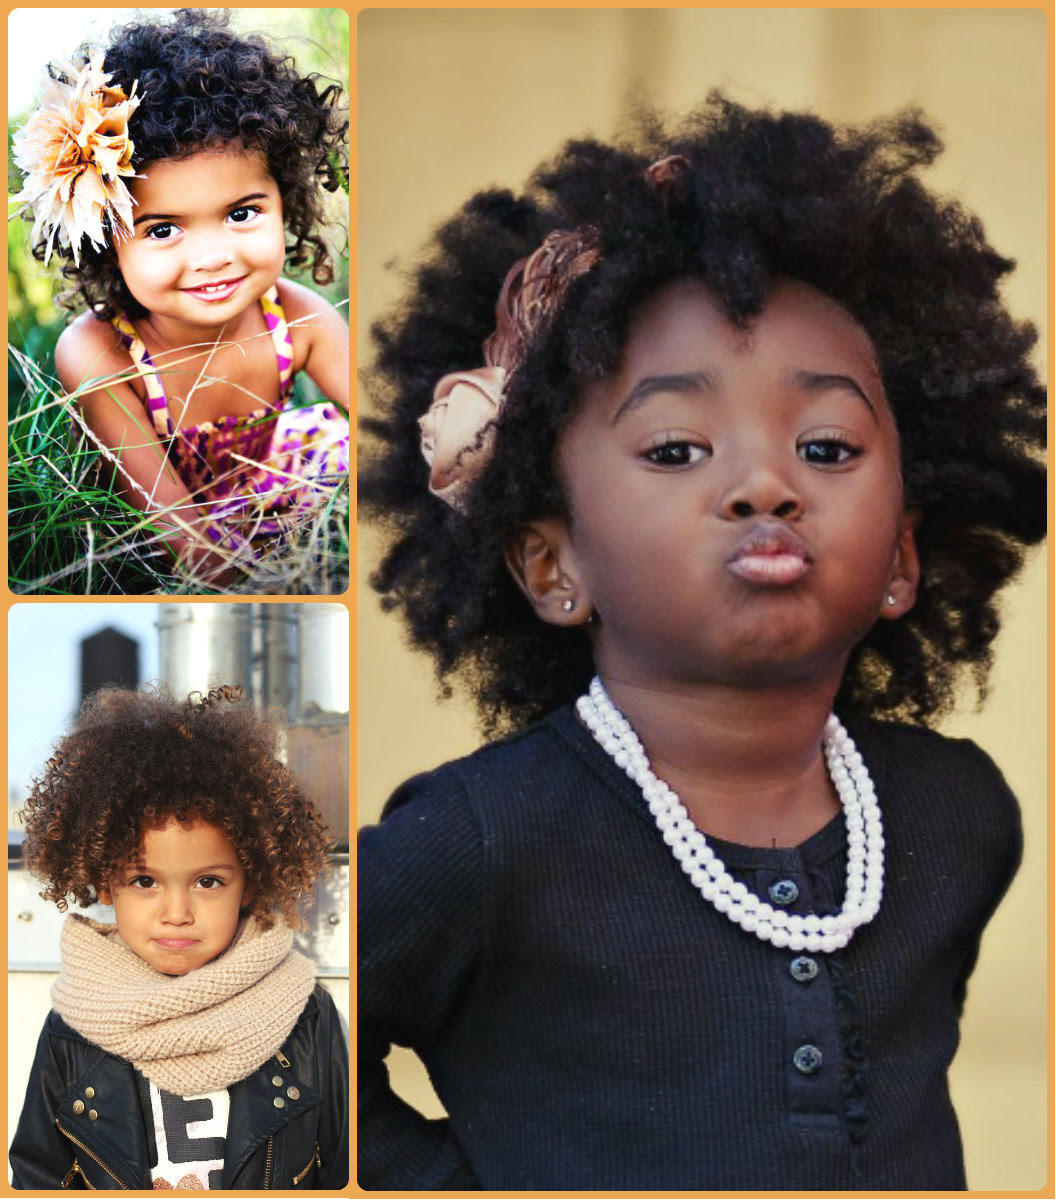 Little Black Boy Hairstyles Braids Simple Hair Style